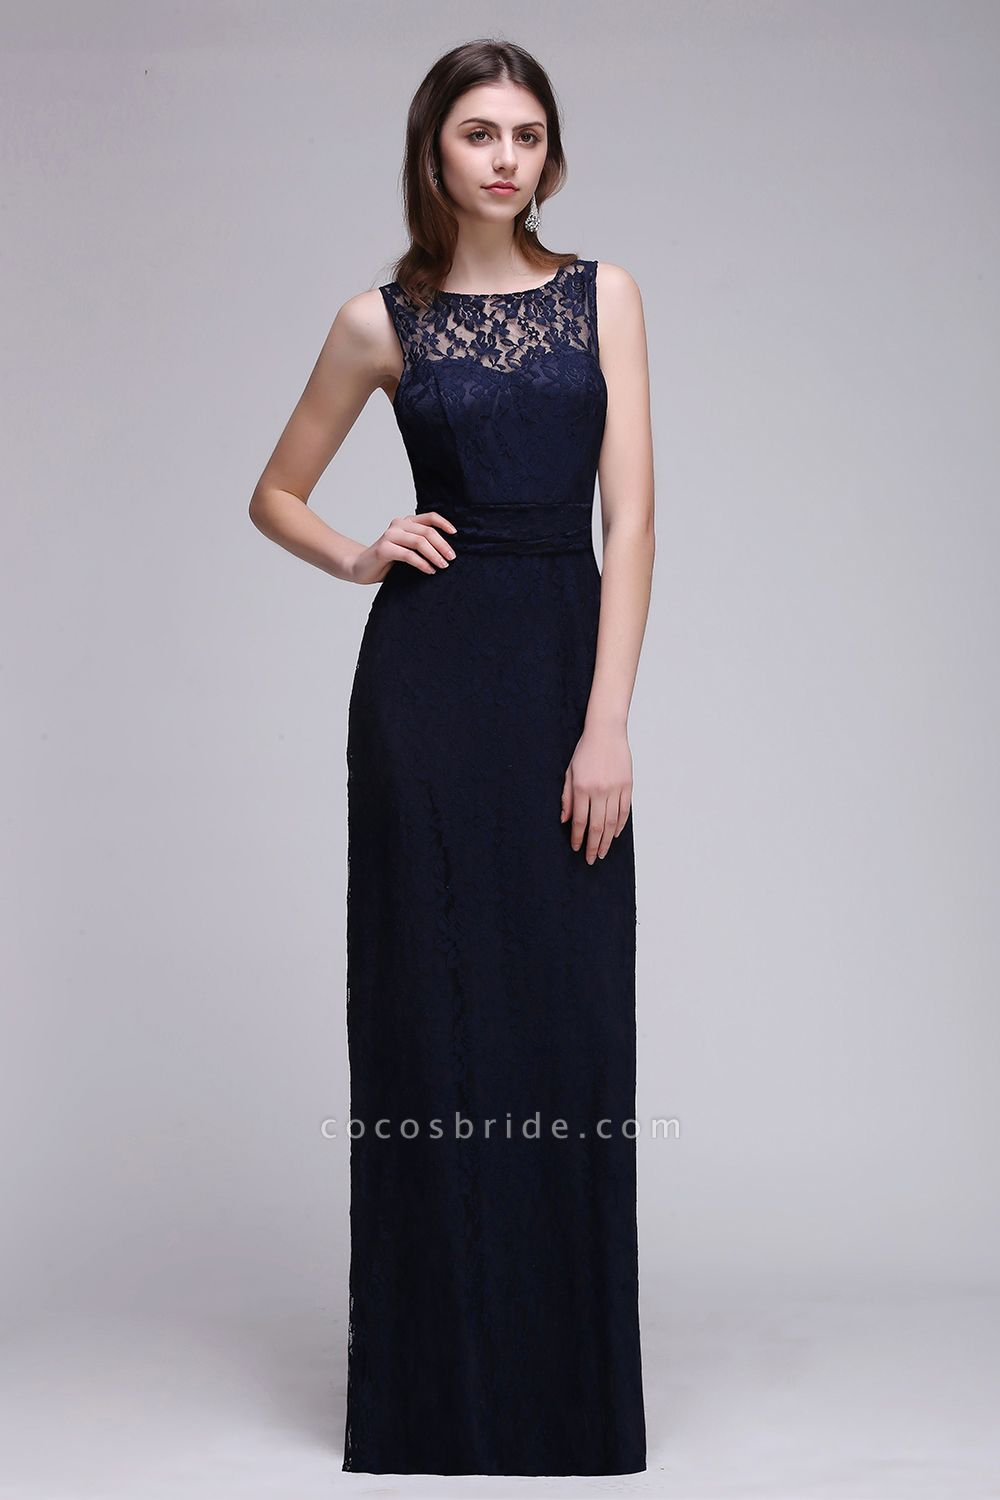 Elegant A-Line Lace Scoop Sleeveless Hollow-Back Floor-Length Bridesmaid Dress